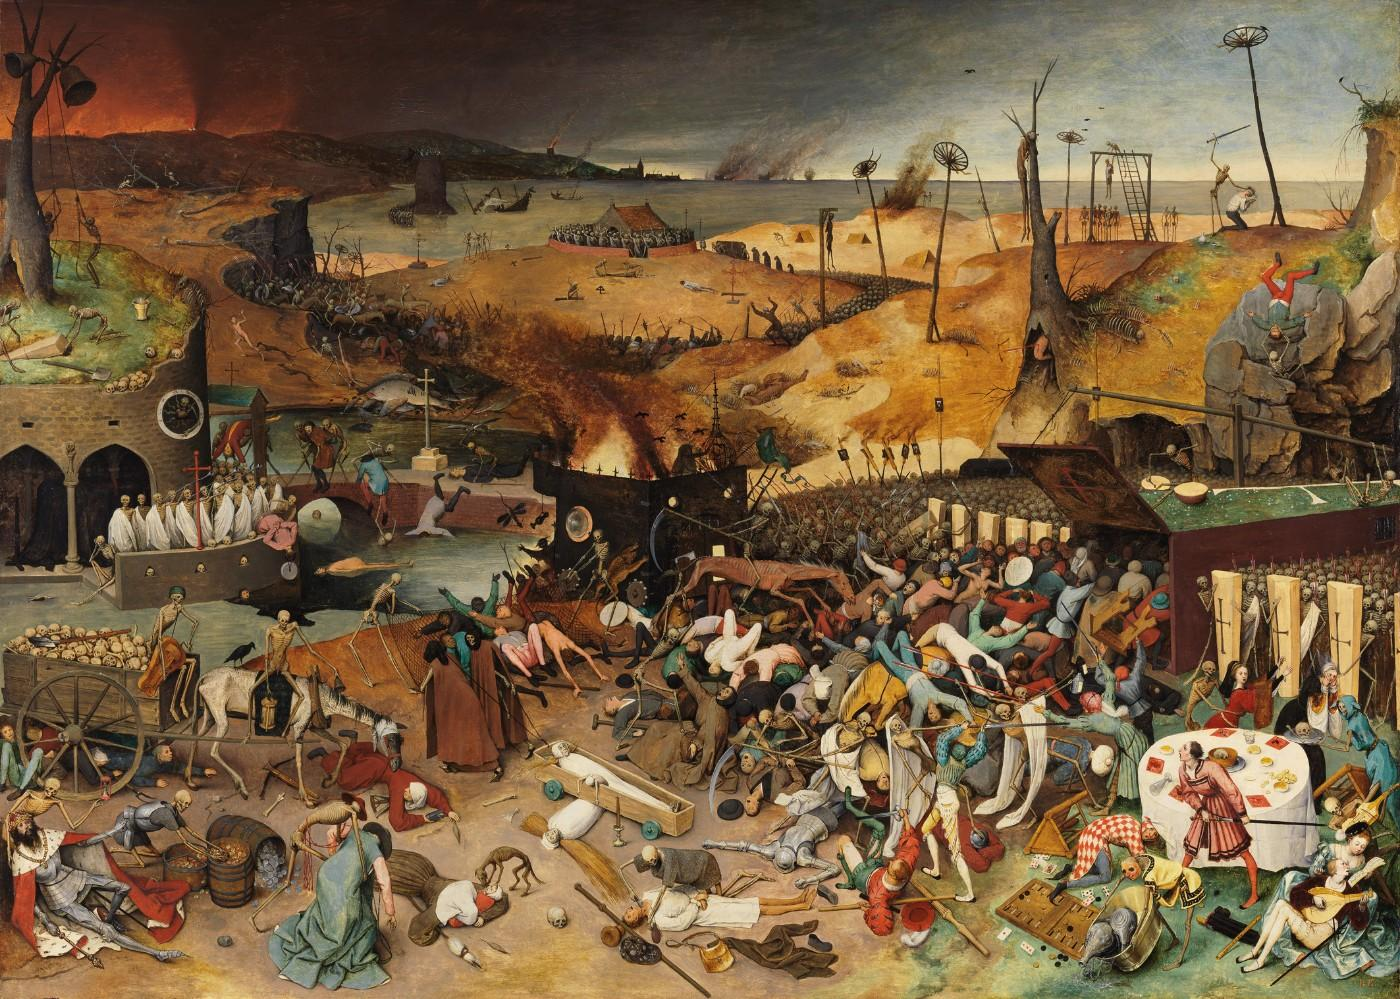 Pieter Bruegel the Elder, The Triumph of Death, probably after 1562